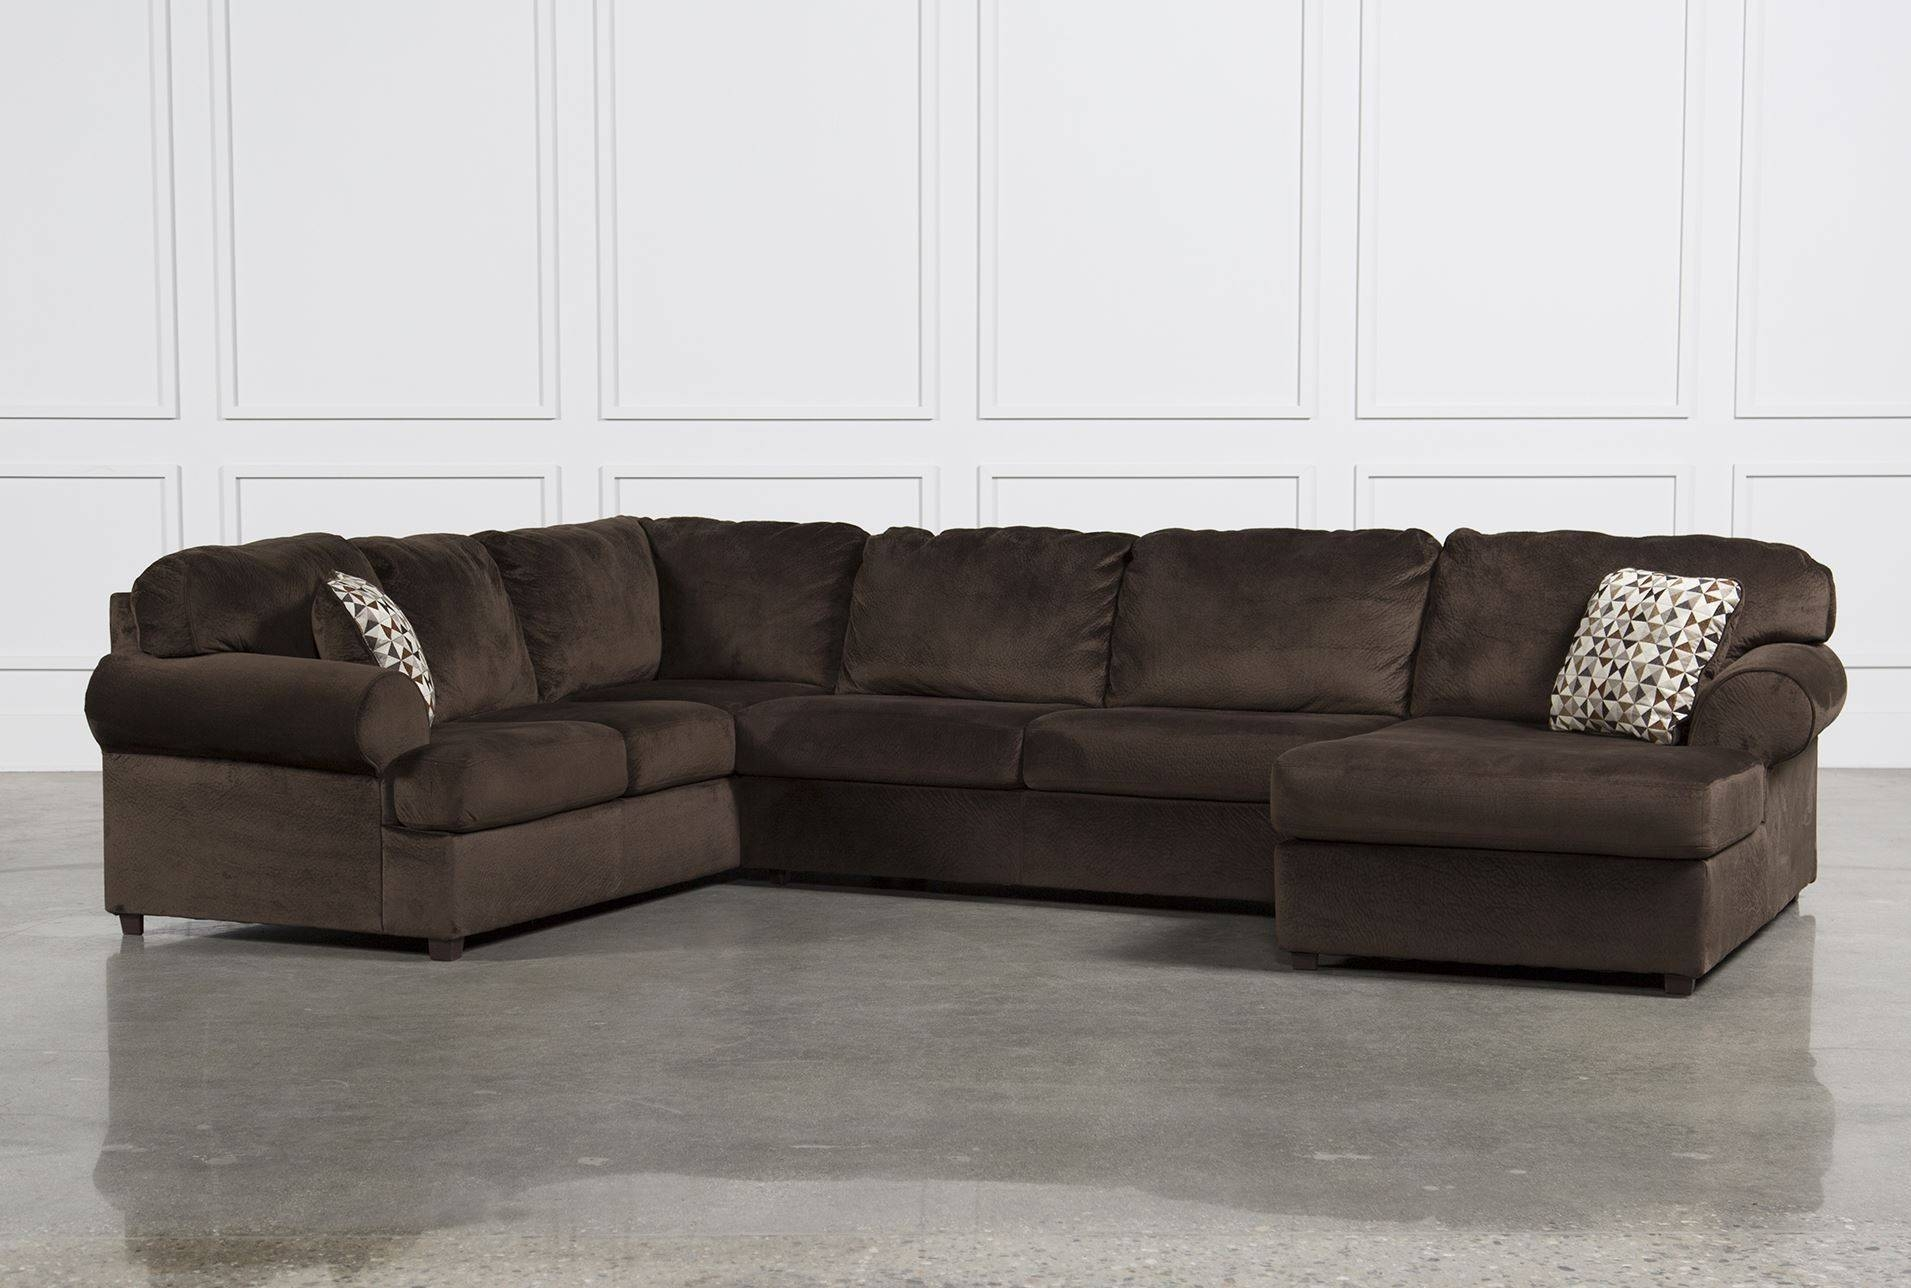 Berkline Leather Sectional Sofas | Centerfieldbar pertaining to Berkline Sectional Sofas (Image 11 of 15)